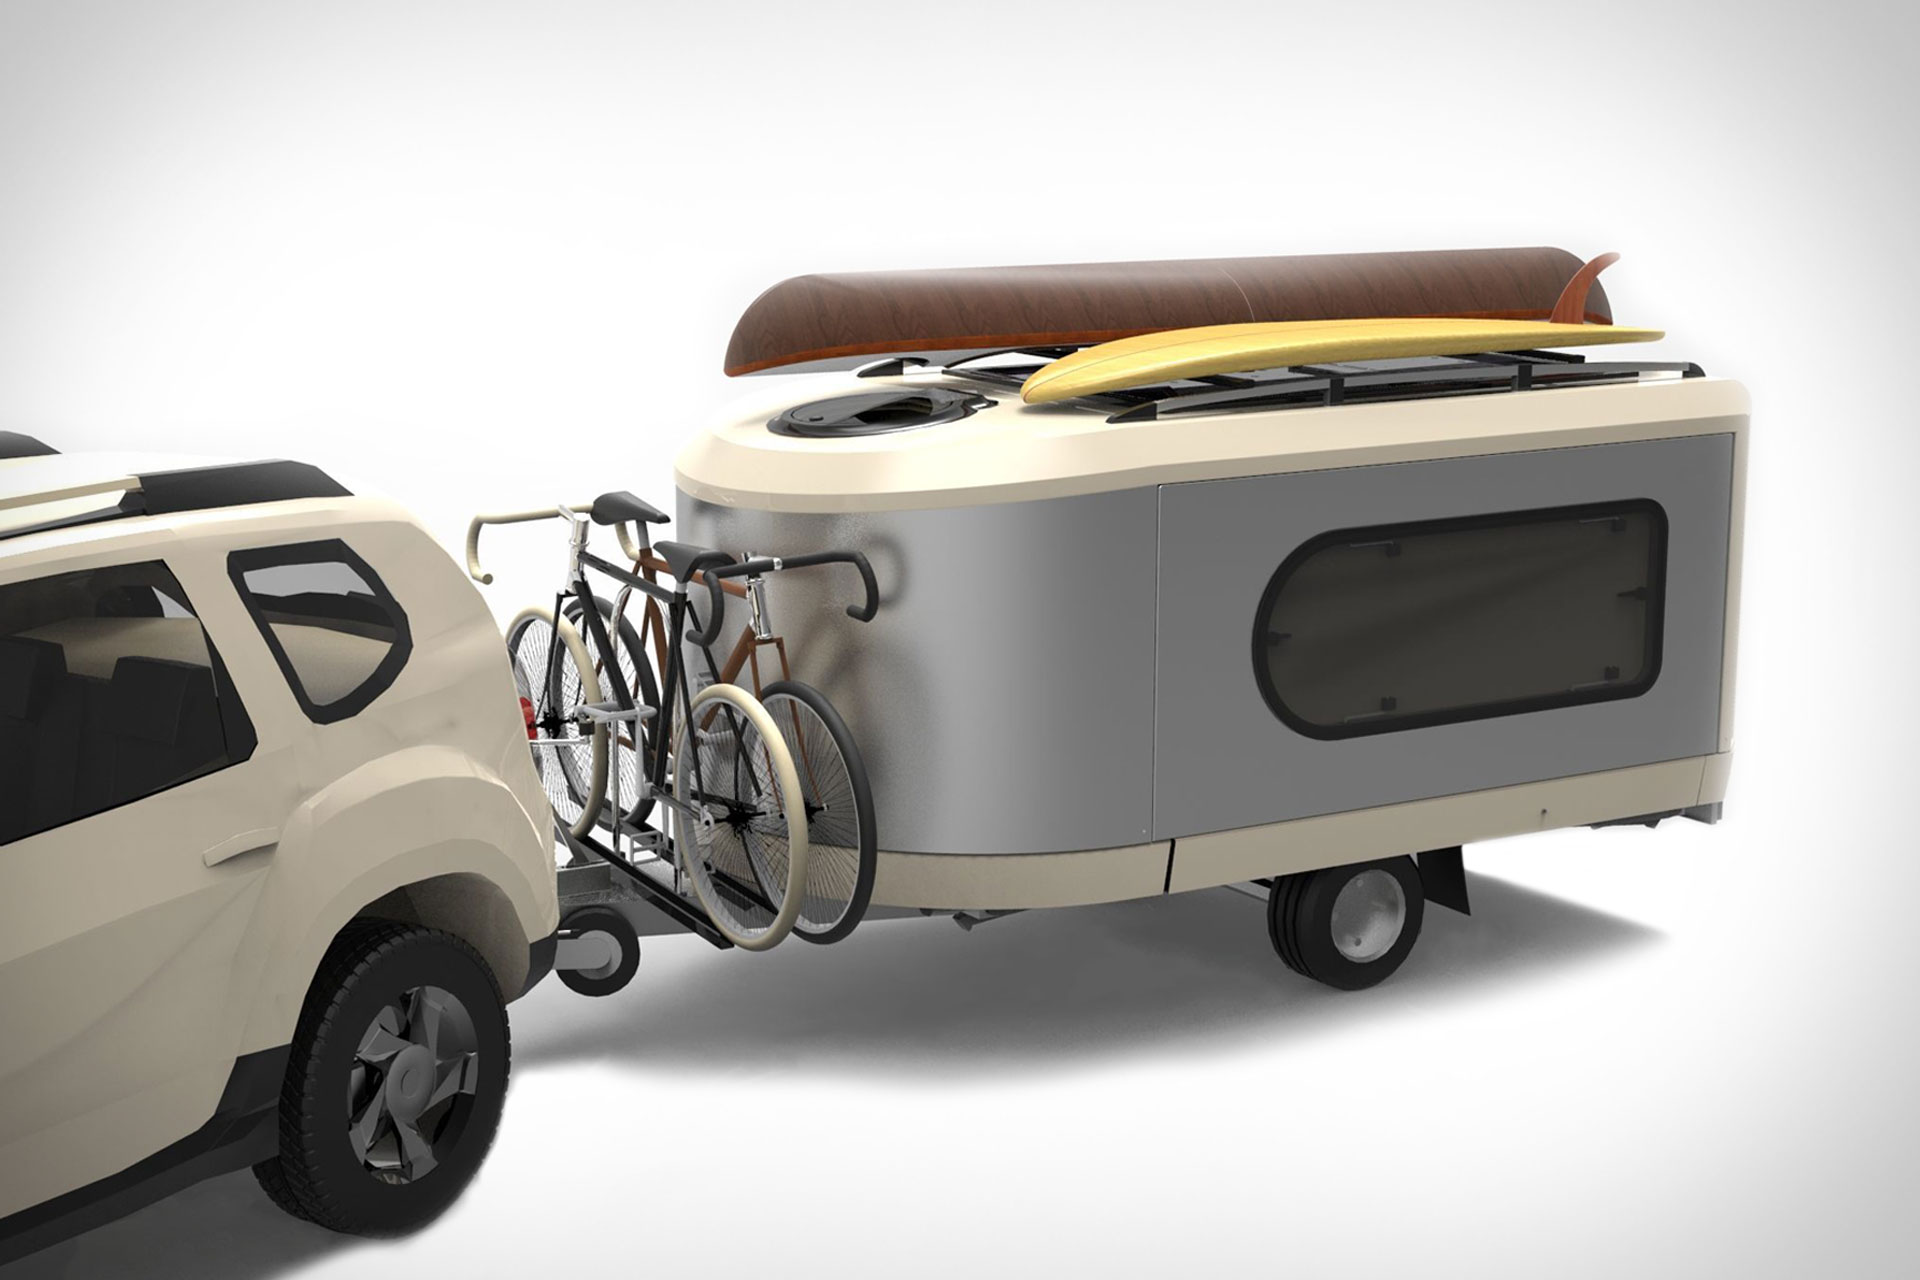 This Camper Pod Expands To Three Times Its Size Living